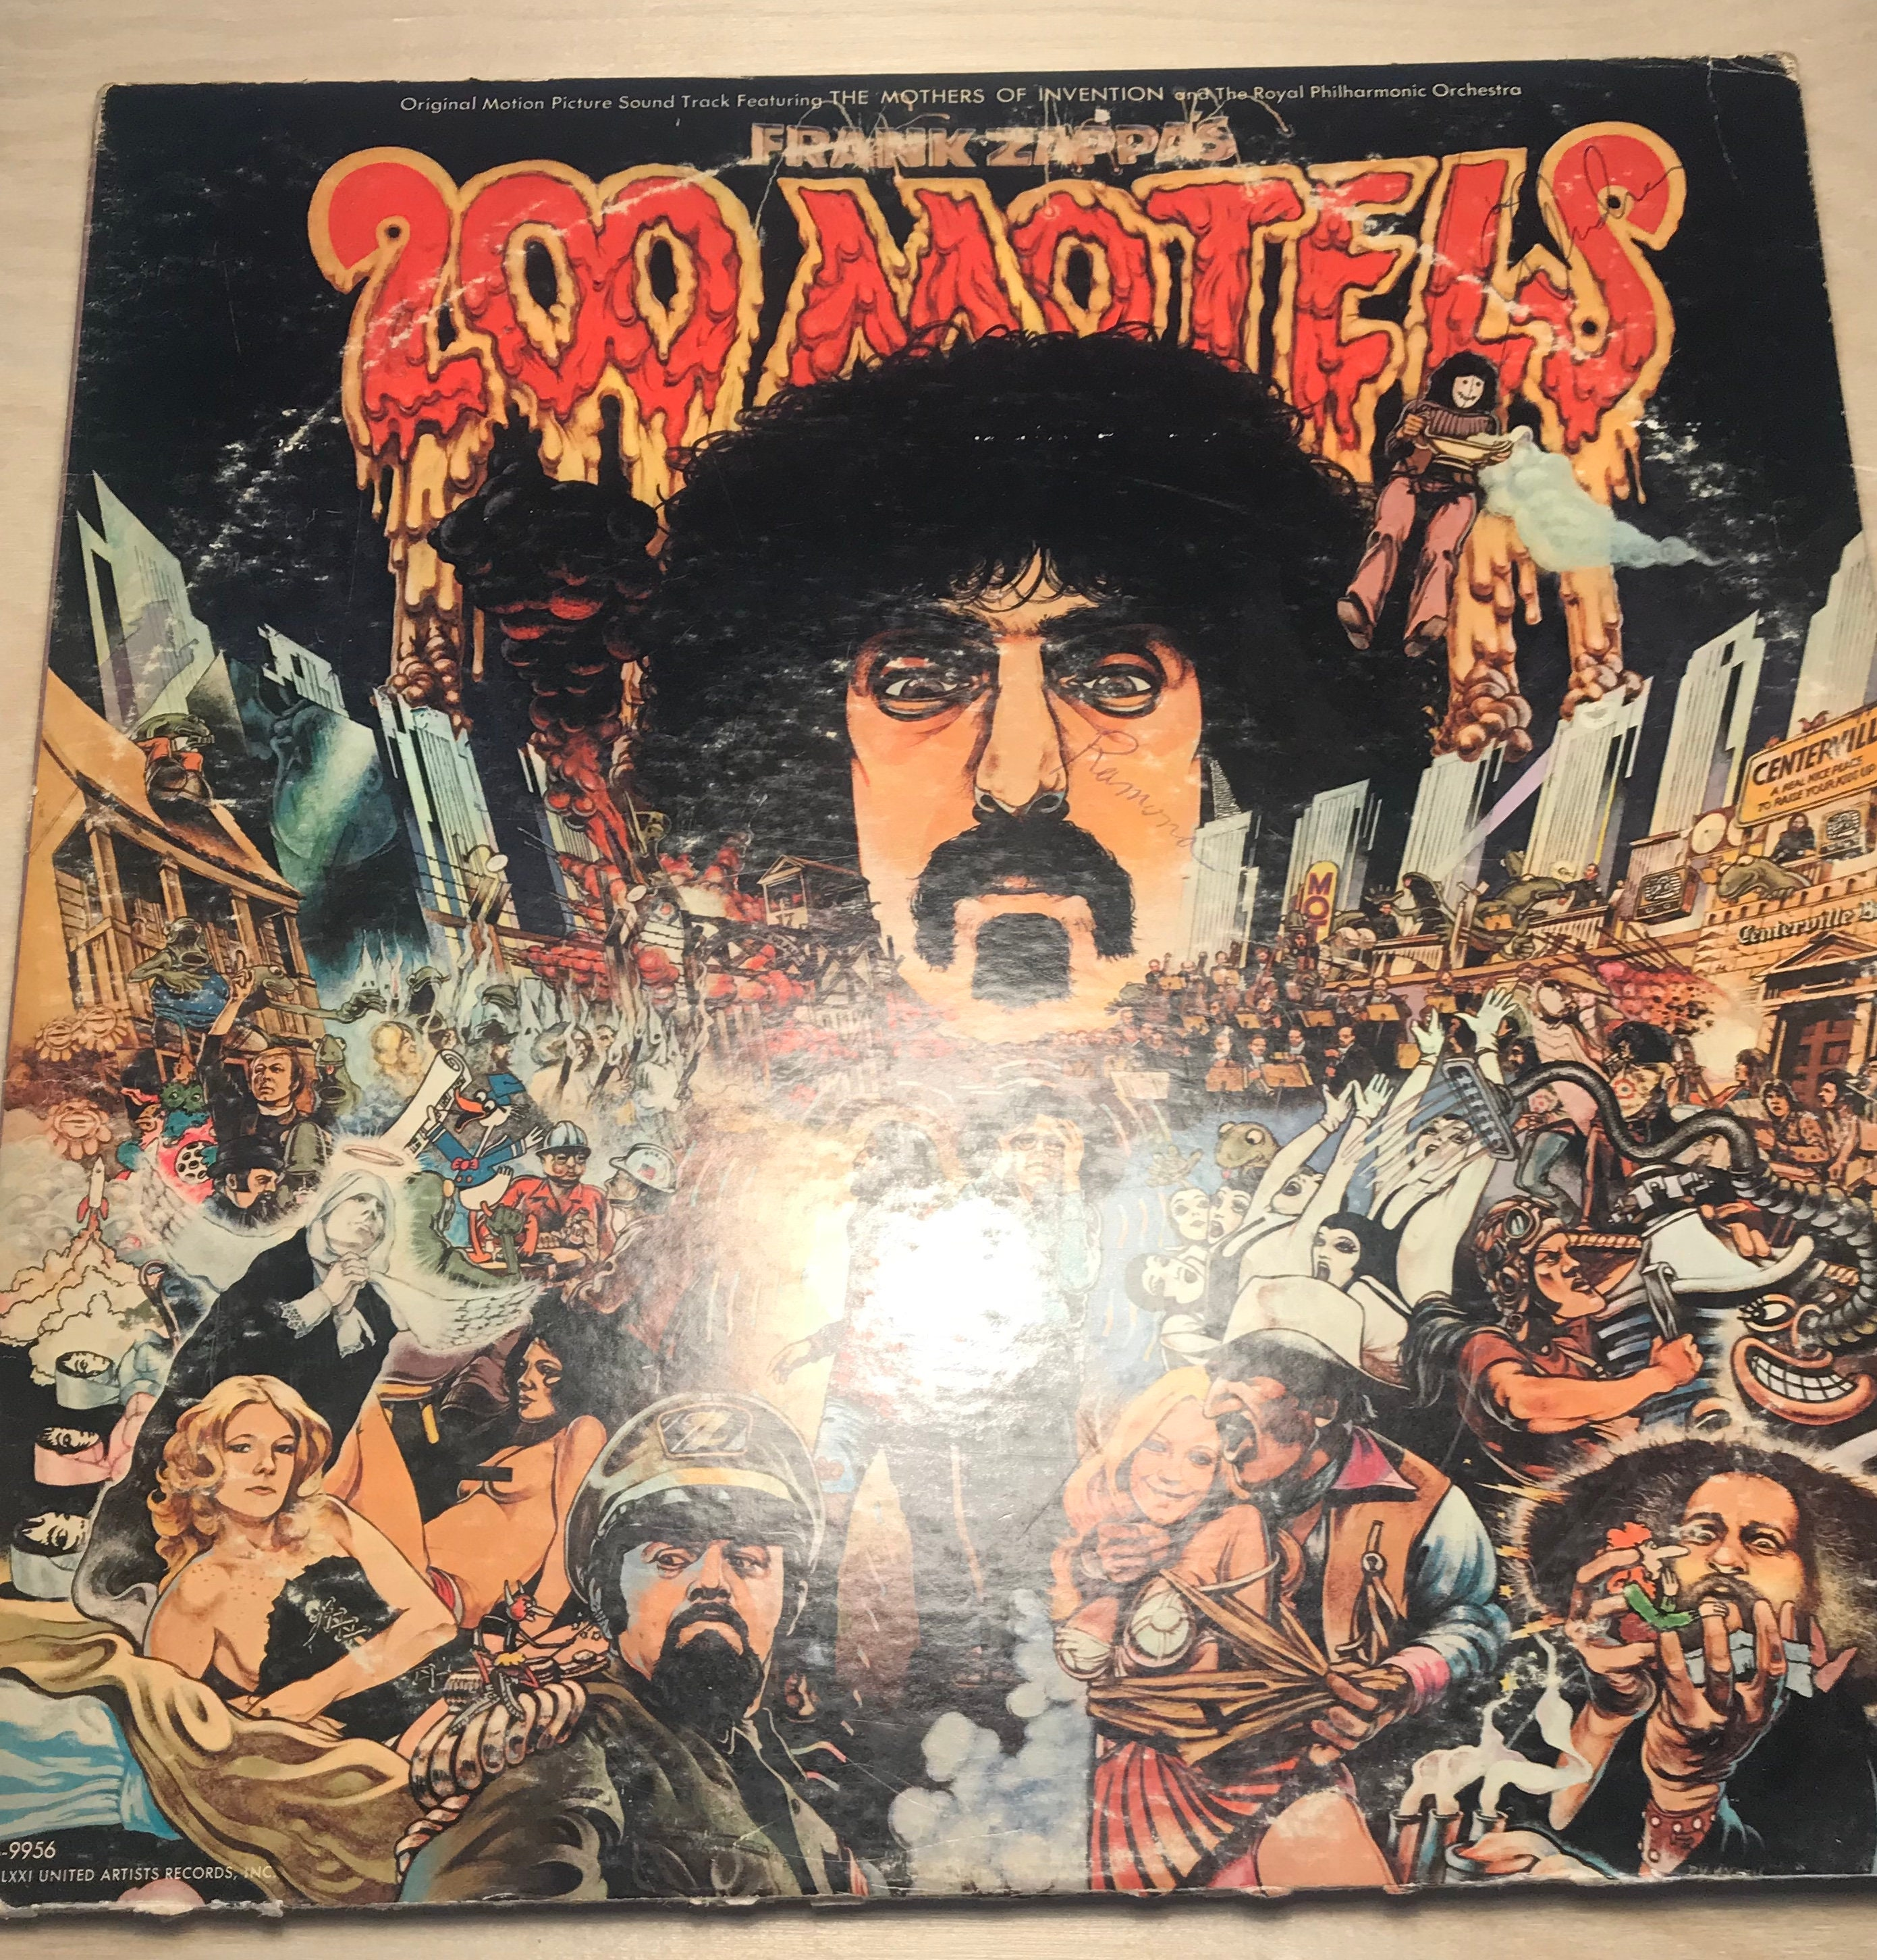 Frank Zappa Mothers Of Invention 200 Motels Original Us